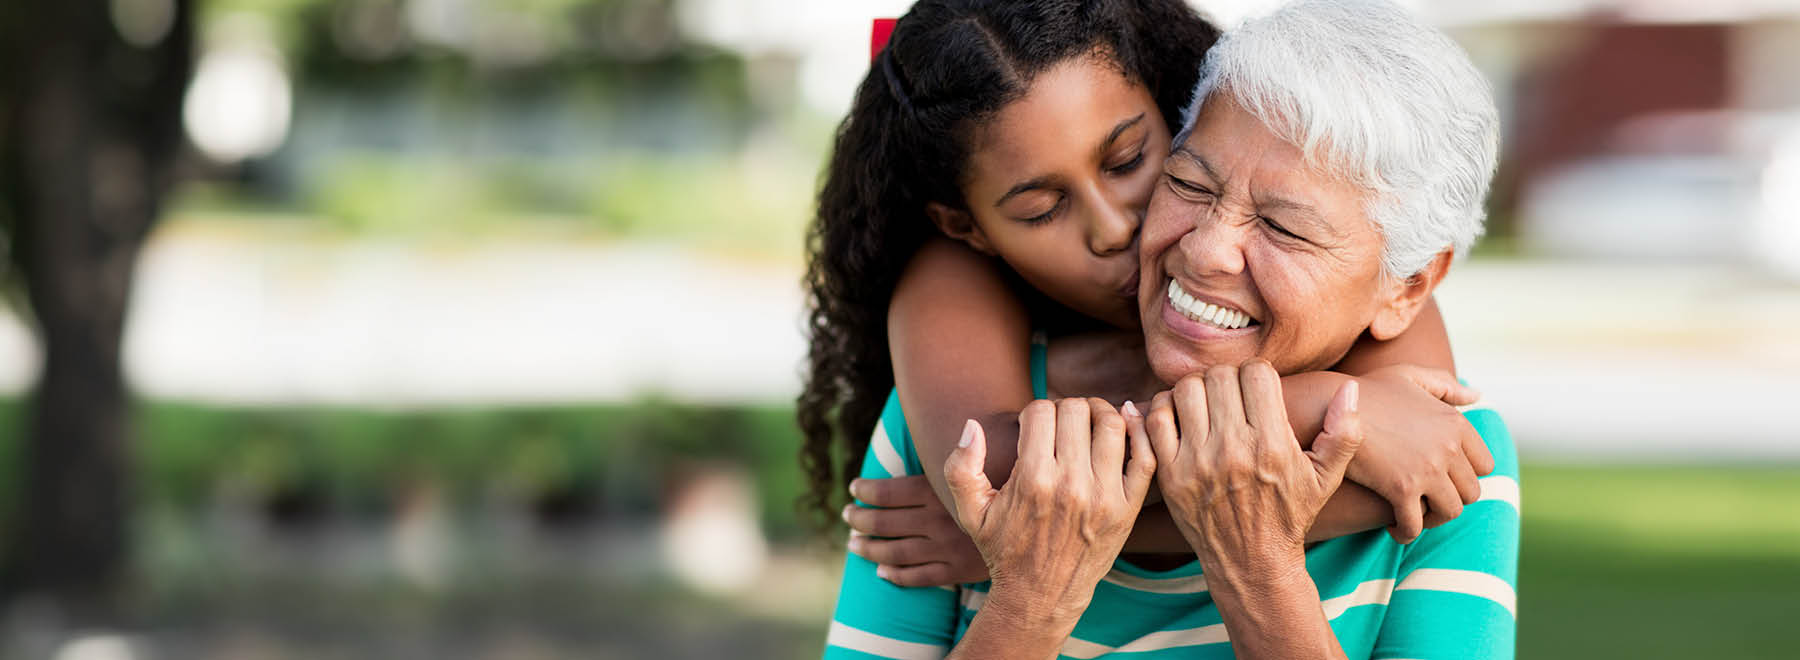 Grandmother and graddaughter embrace